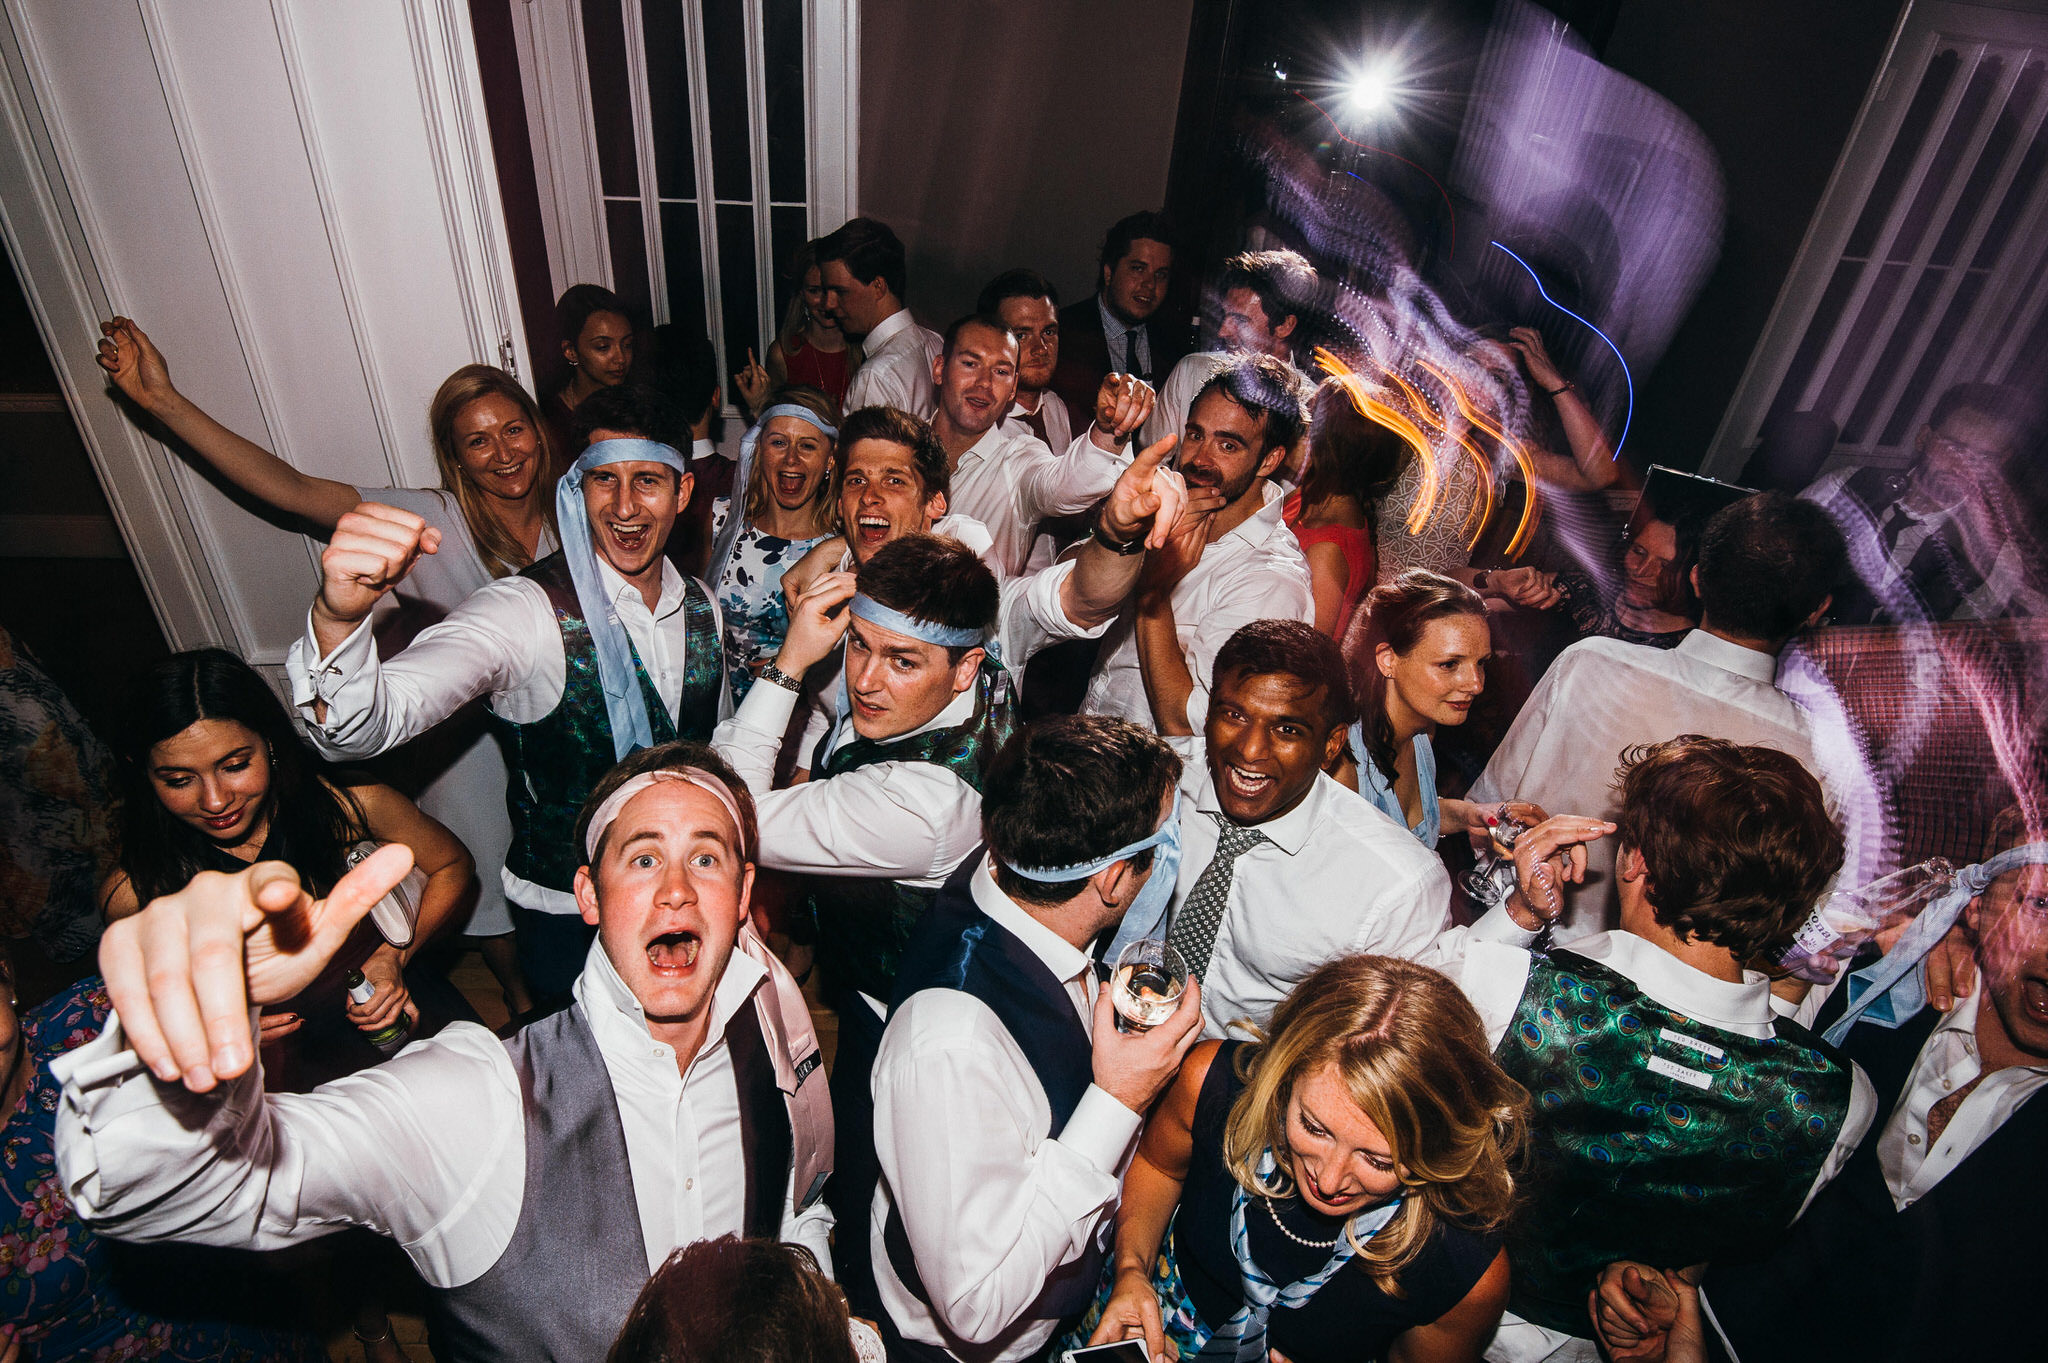 Dancing at Nonsuch mansion wedding